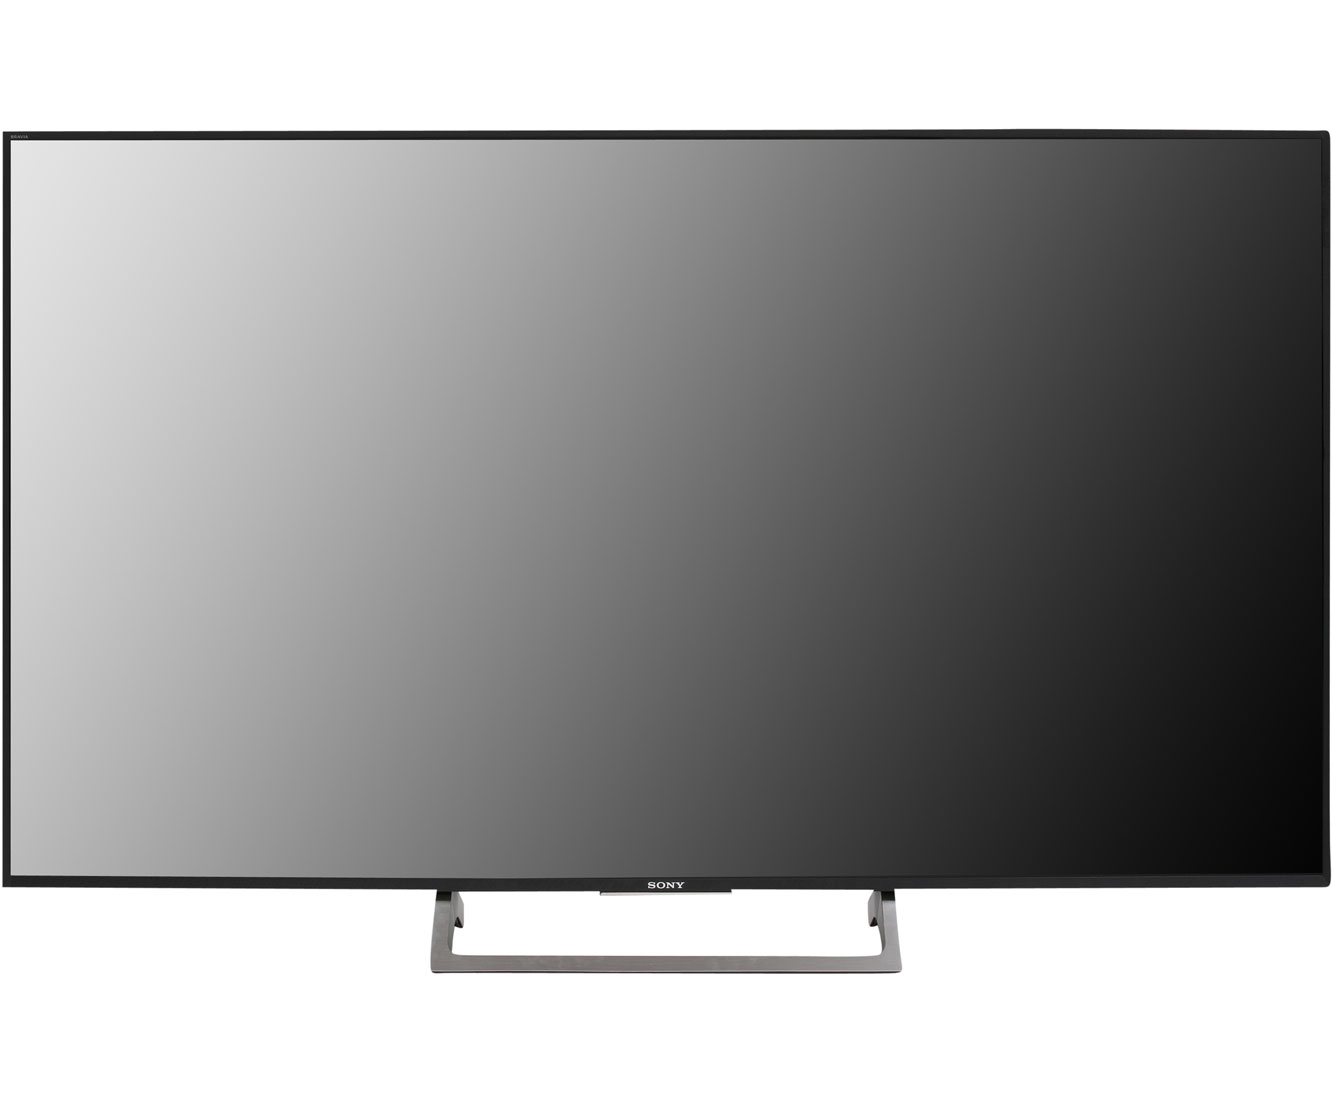 sony kd49xe7005baep 4k uhd led fernseher 123 cm 49 zoll. Black Bedroom Furniture Sets. Home Design Ideas